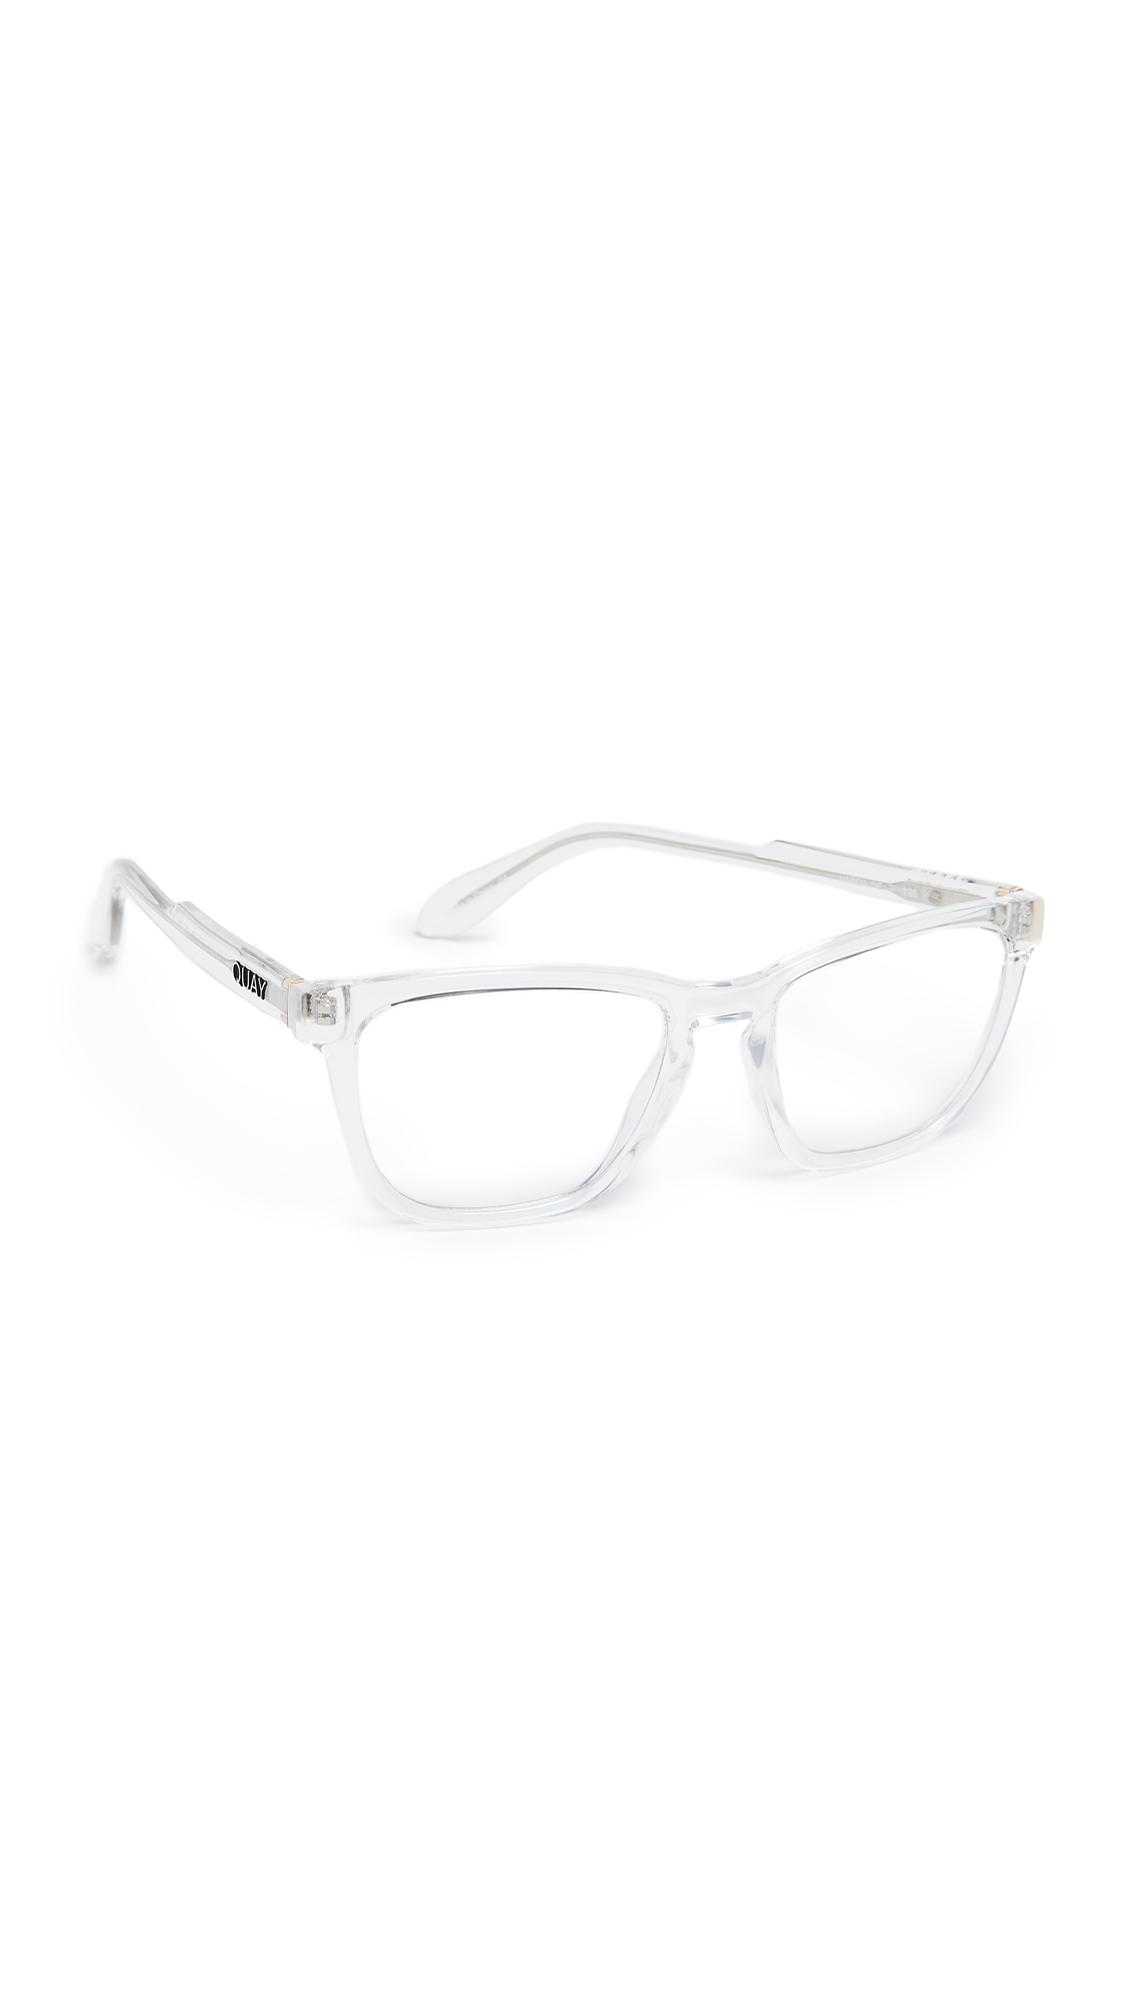 4724692121 Quay Hardwire Blue Light Blocker Glasses In Clear Clear